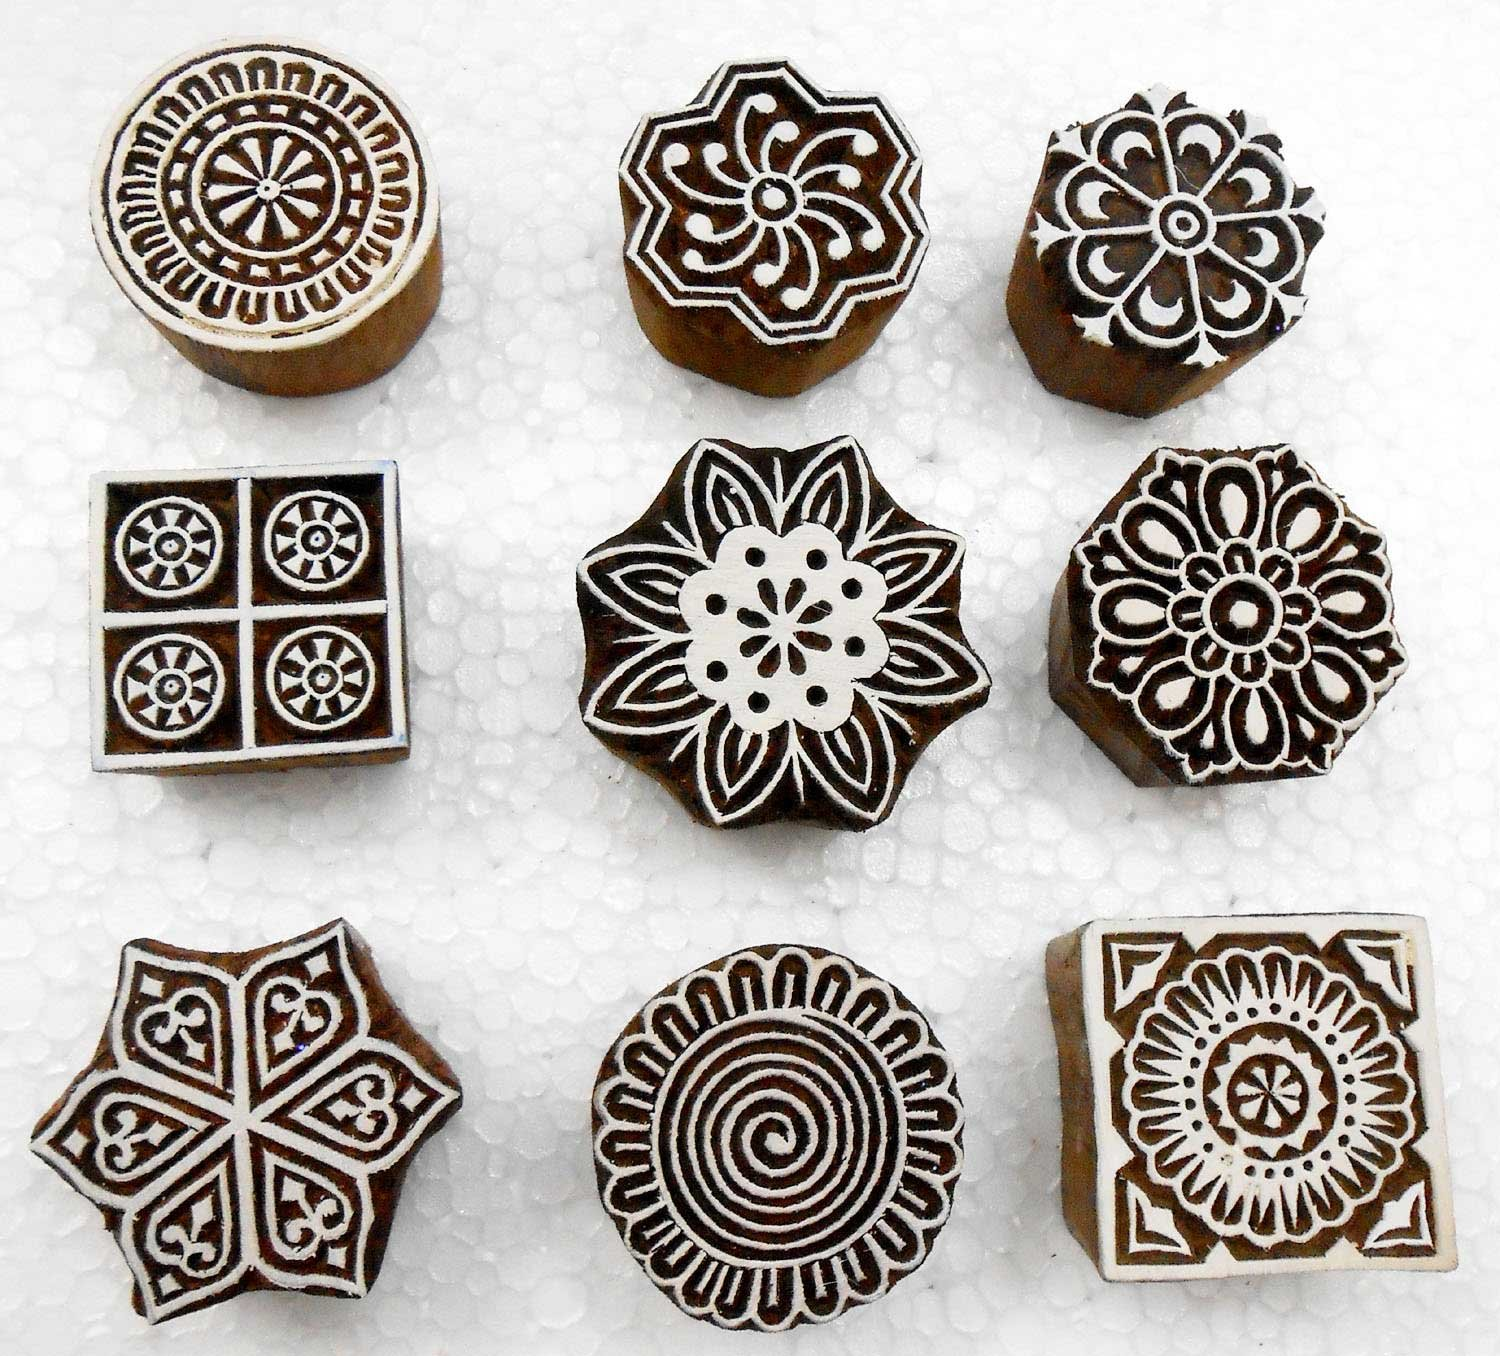 Handcarved Wooden Block Printing Stamps (Set of 9) for Textile Designing/ Craft printing pattern for Saree/ Scrapbookng/ Tattoo